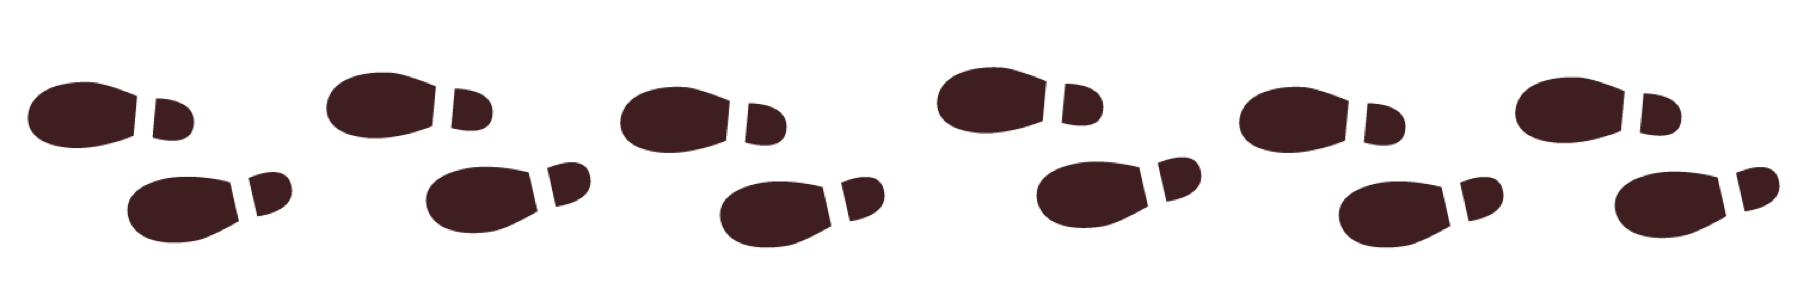 Footprint clipart brown. Tracking student participation in